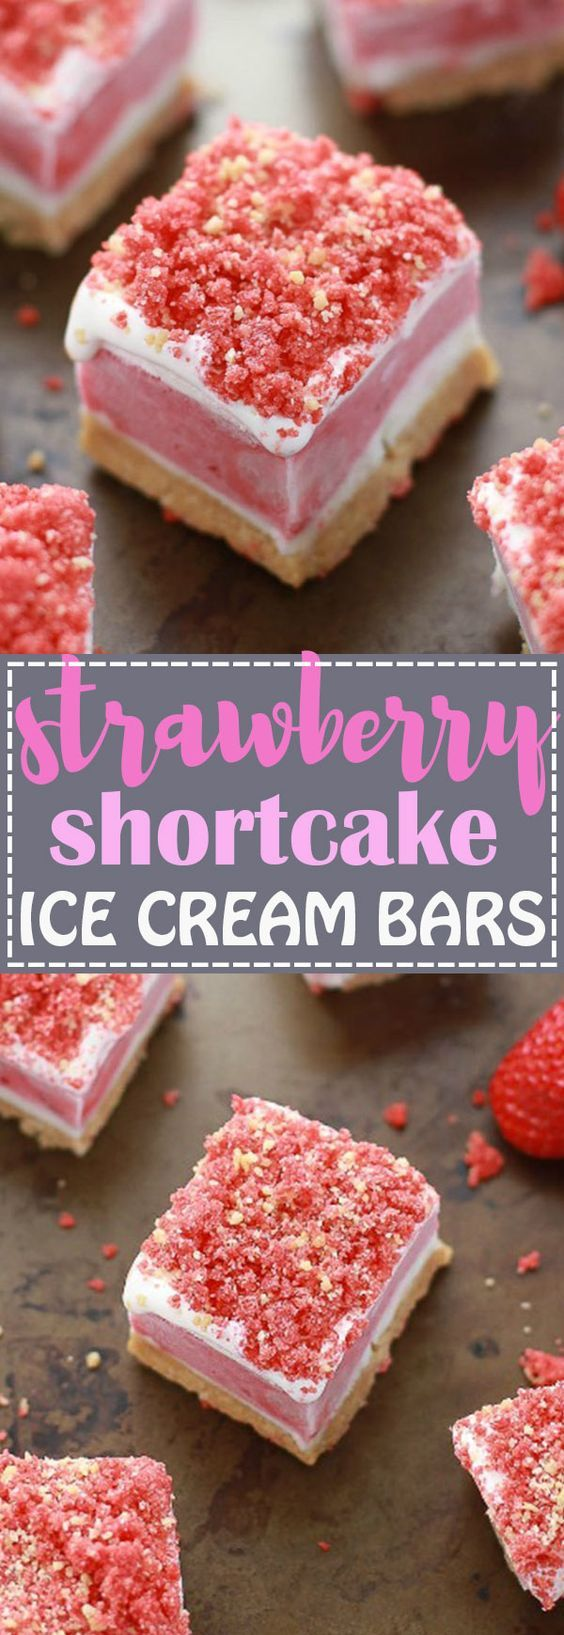 No Bake Strawberry Shortcake Ice Cream Bars has all the flavors you love about the Good Humor Popsicles in an easy no bake icebox treat. Best of all, this recipe is super simple to make with creamy vanilla ice cream, strawberry sorbet and crushed Oreo cookies.So delicious and great for cooling down on birthdays or any summer party!